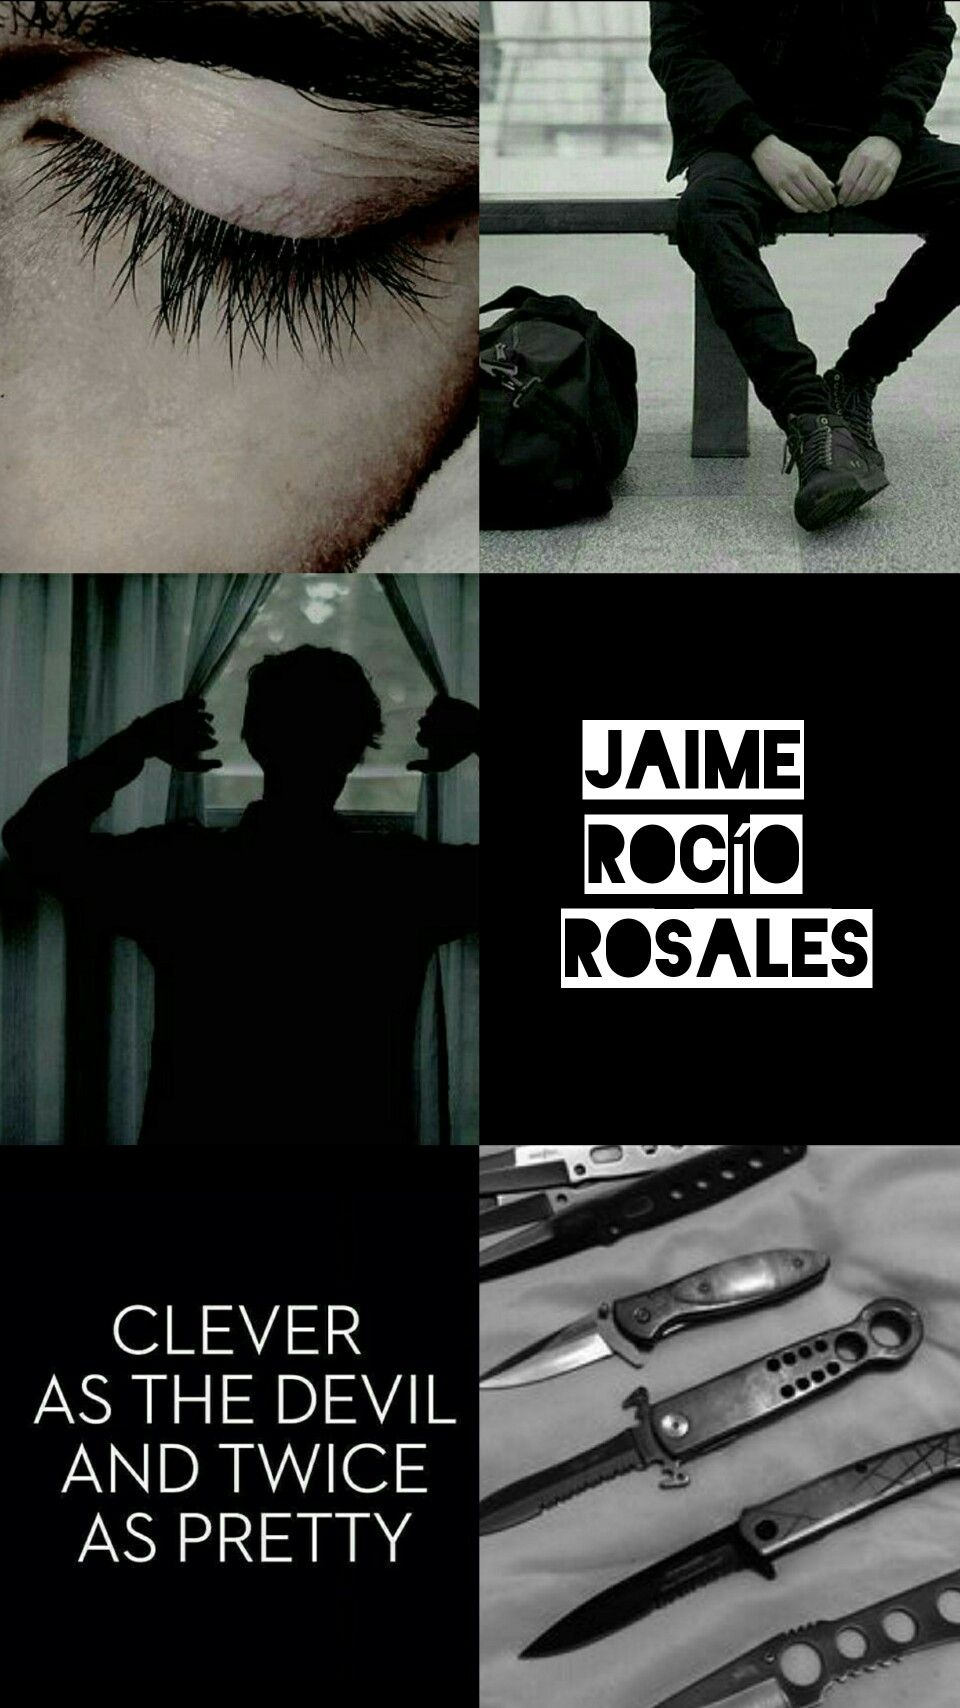 Jaime Rosales Aesthetic From The Dark Artifices The Dark Artifices